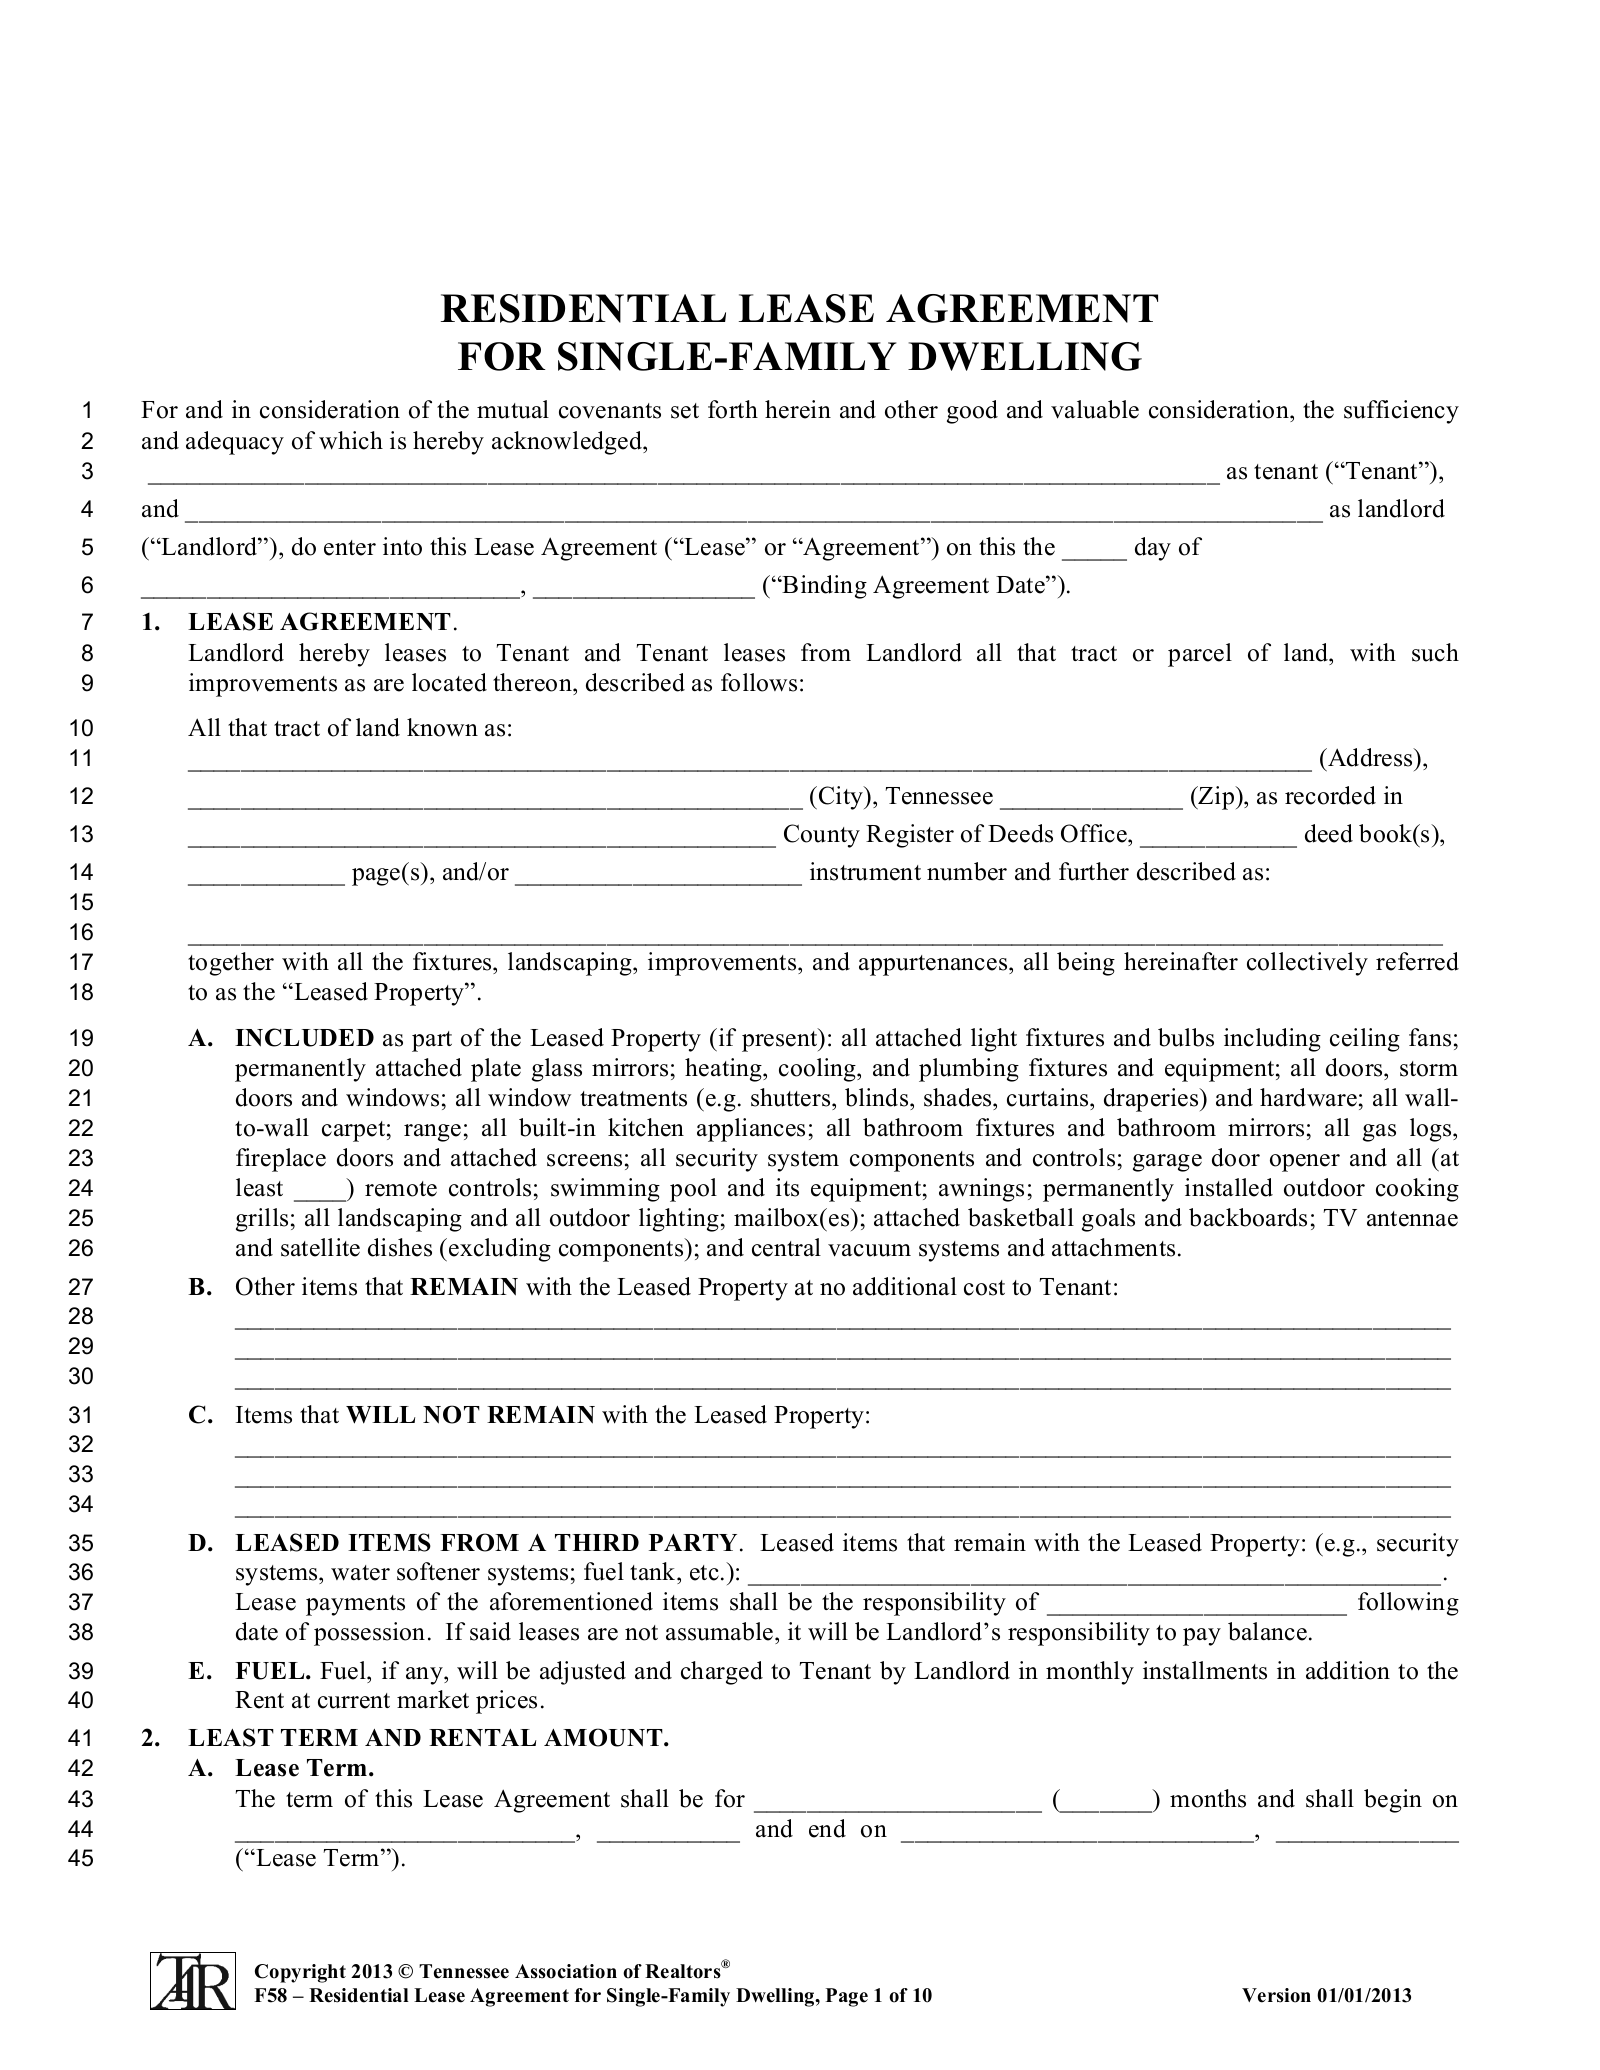 Free Tennessee Association Of Realtors Residential Lease